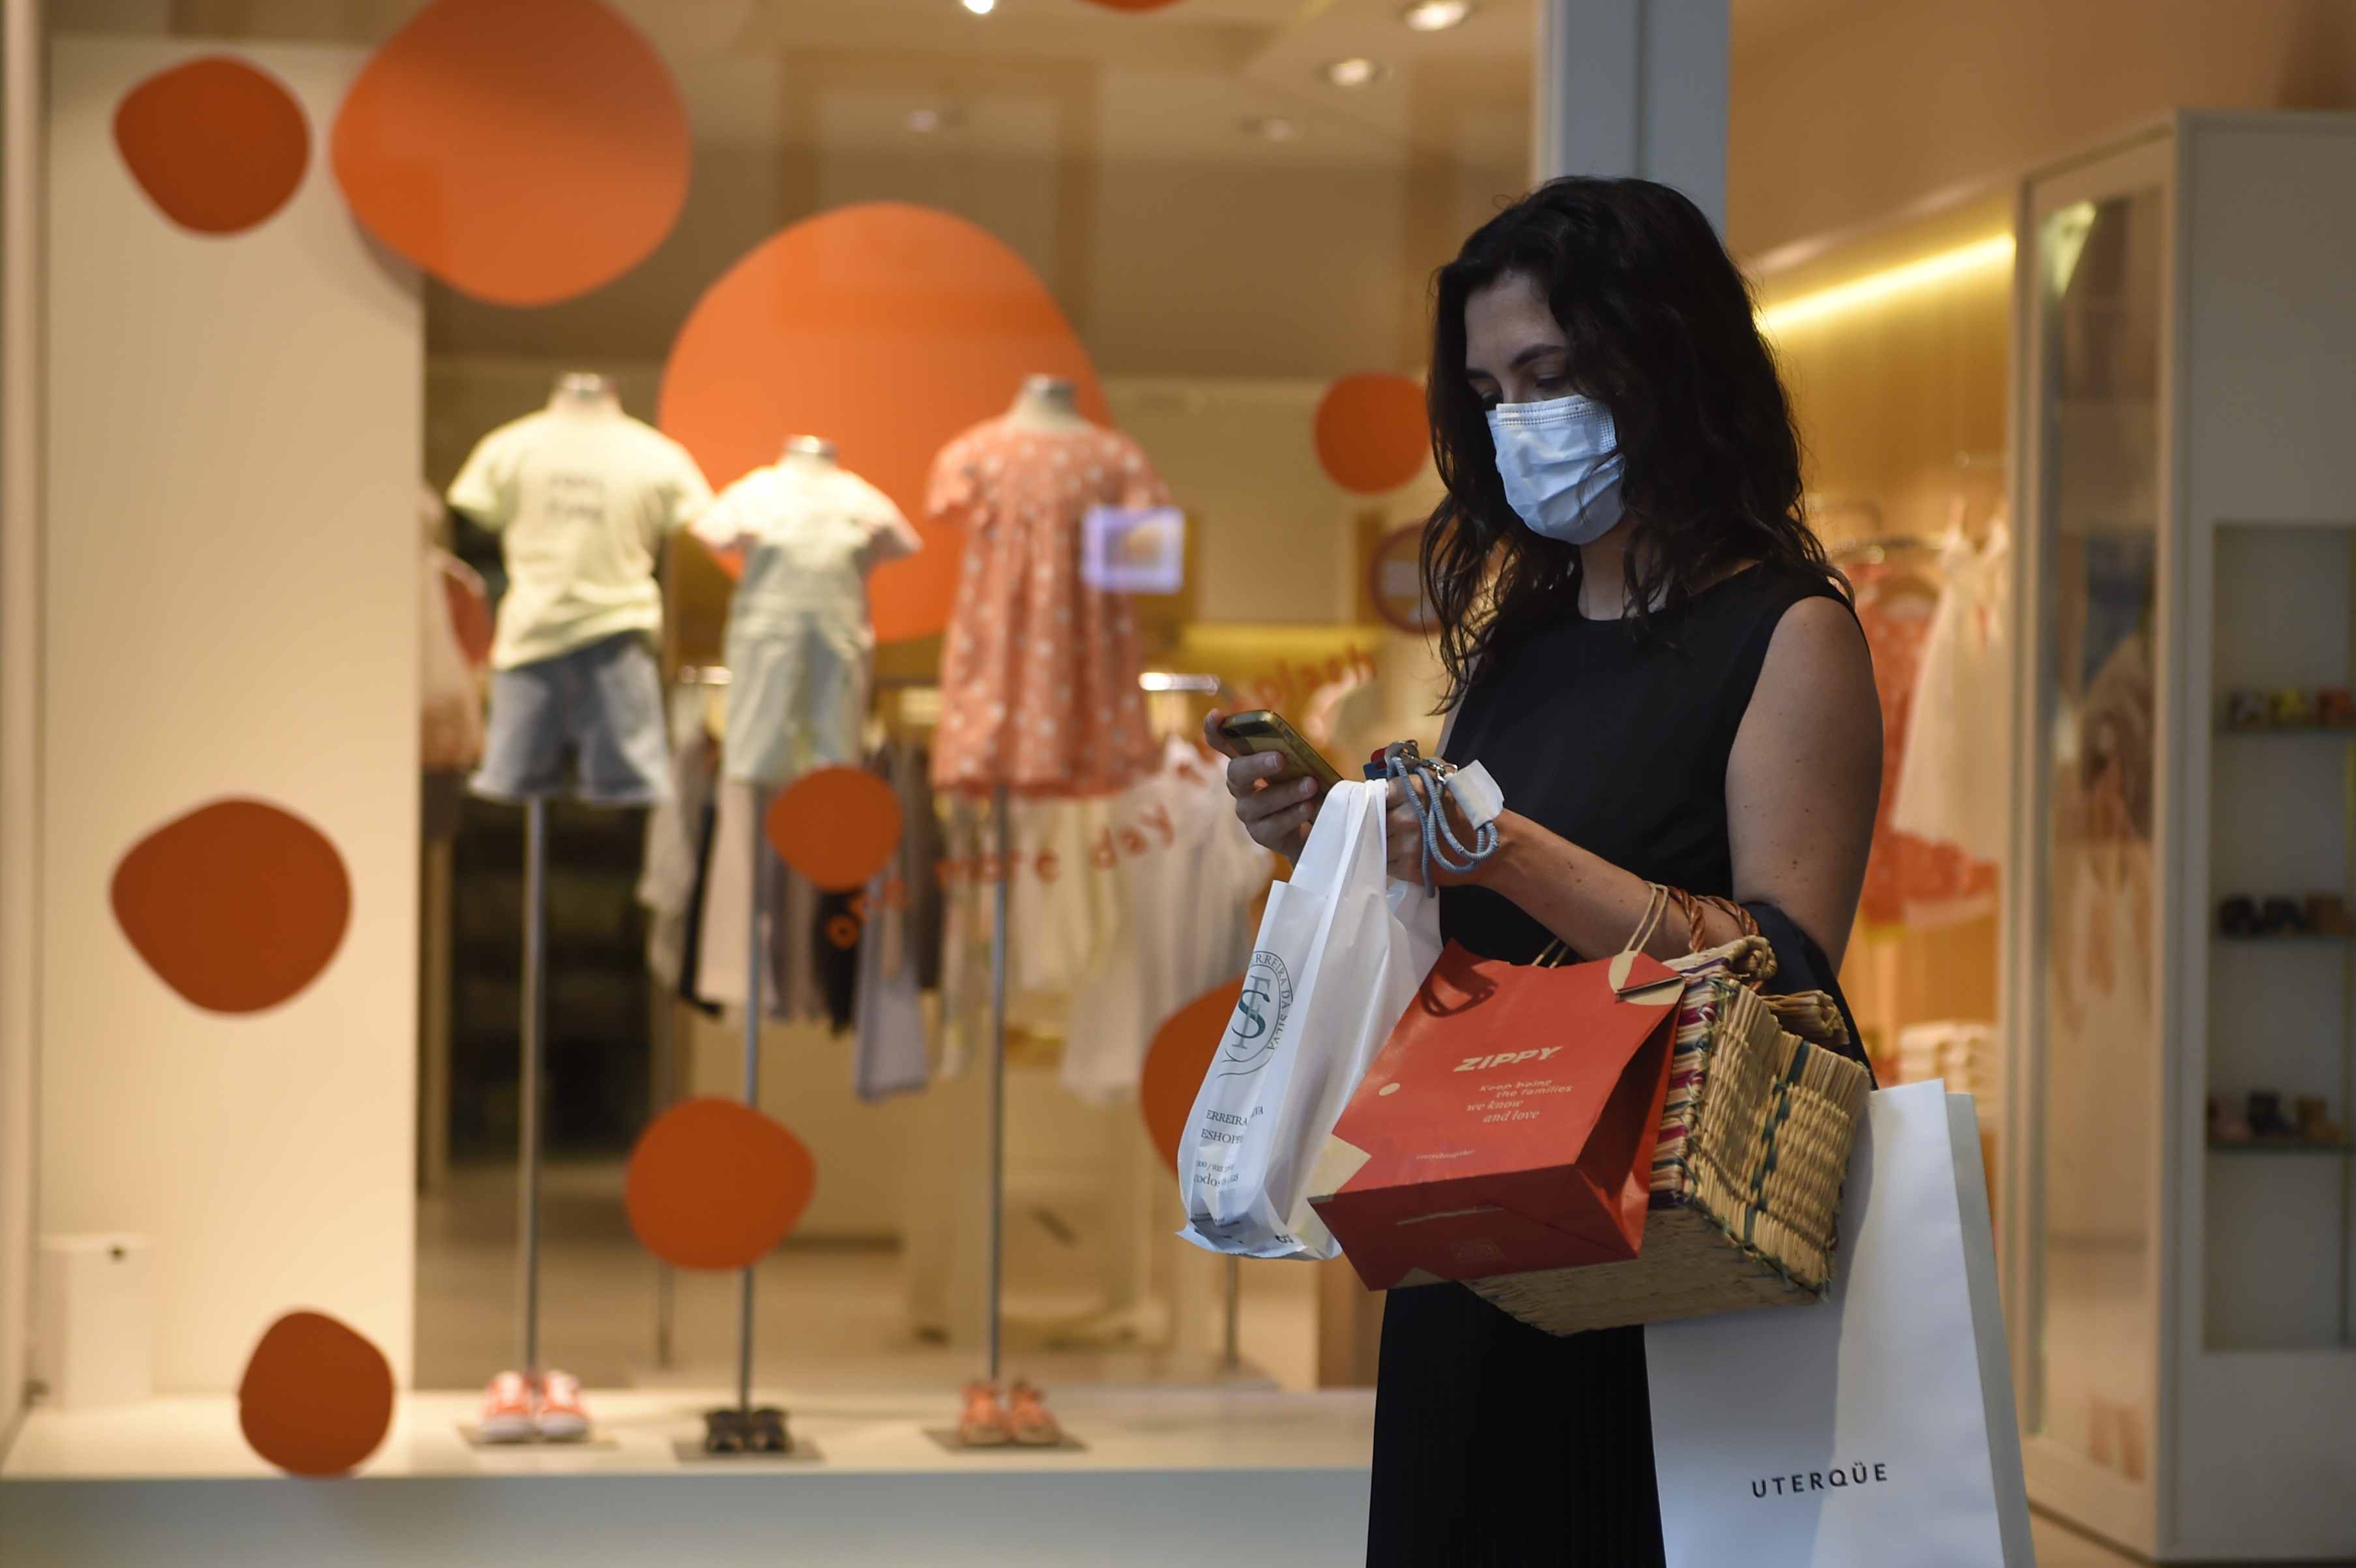 A costumer uses a face mask at the Norte Shopping Center in Porto, on June 1, 2020 as the shopping centres reopened after the lockdown to prevent the spread of coronavirus disease, COVID-19. - After a closure of two months and a half due to the coronavirus pandemic, cinemas, theatres and performance halls reopen as of today in Portugal, which continues its deconfinement process. Shopping centers may also reopen, except for those in the Lisbon region, where a more significant increase in Covid-19 cases occurred in recent days than in the rest of the country. (Photo by MIGUEL RIOPA / AFP) (Photo by MIGUEL RIOPA/AFP via Getty Images)